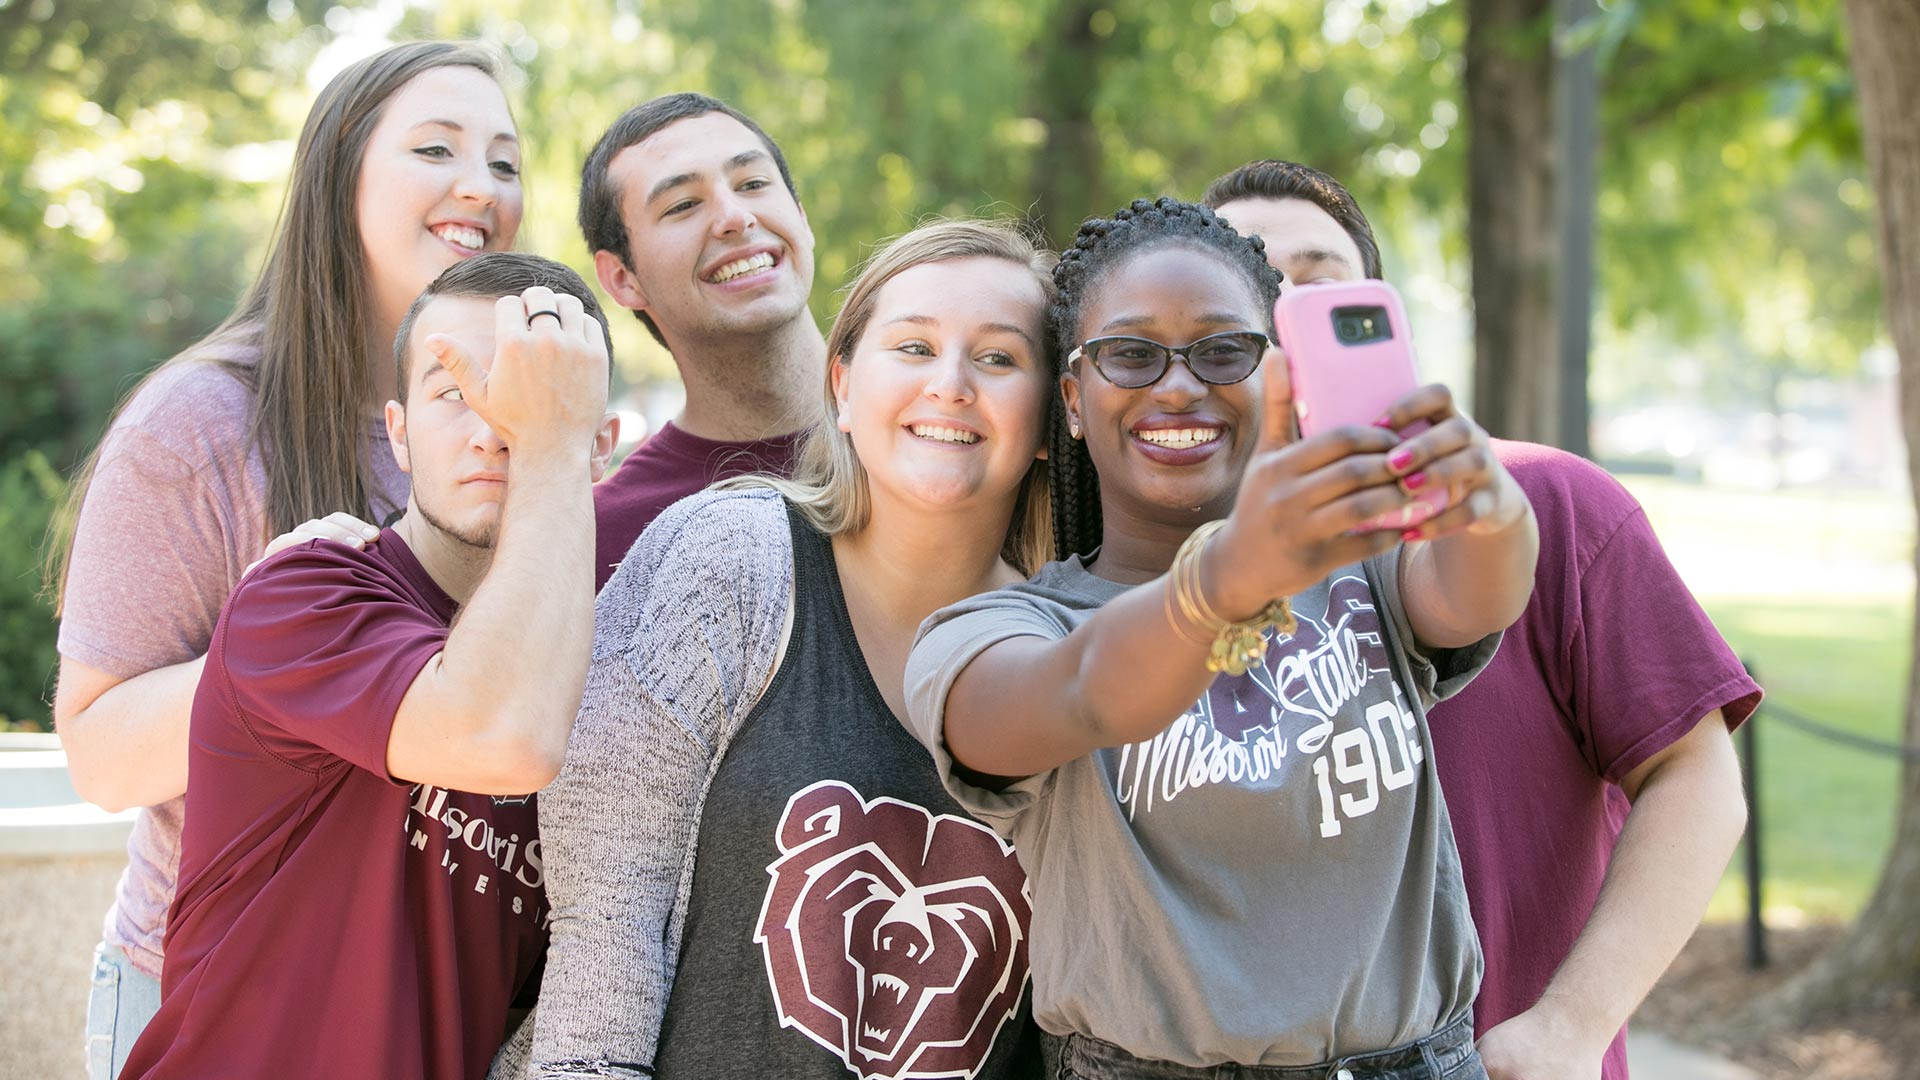 Missouri State students taking a group selfie.